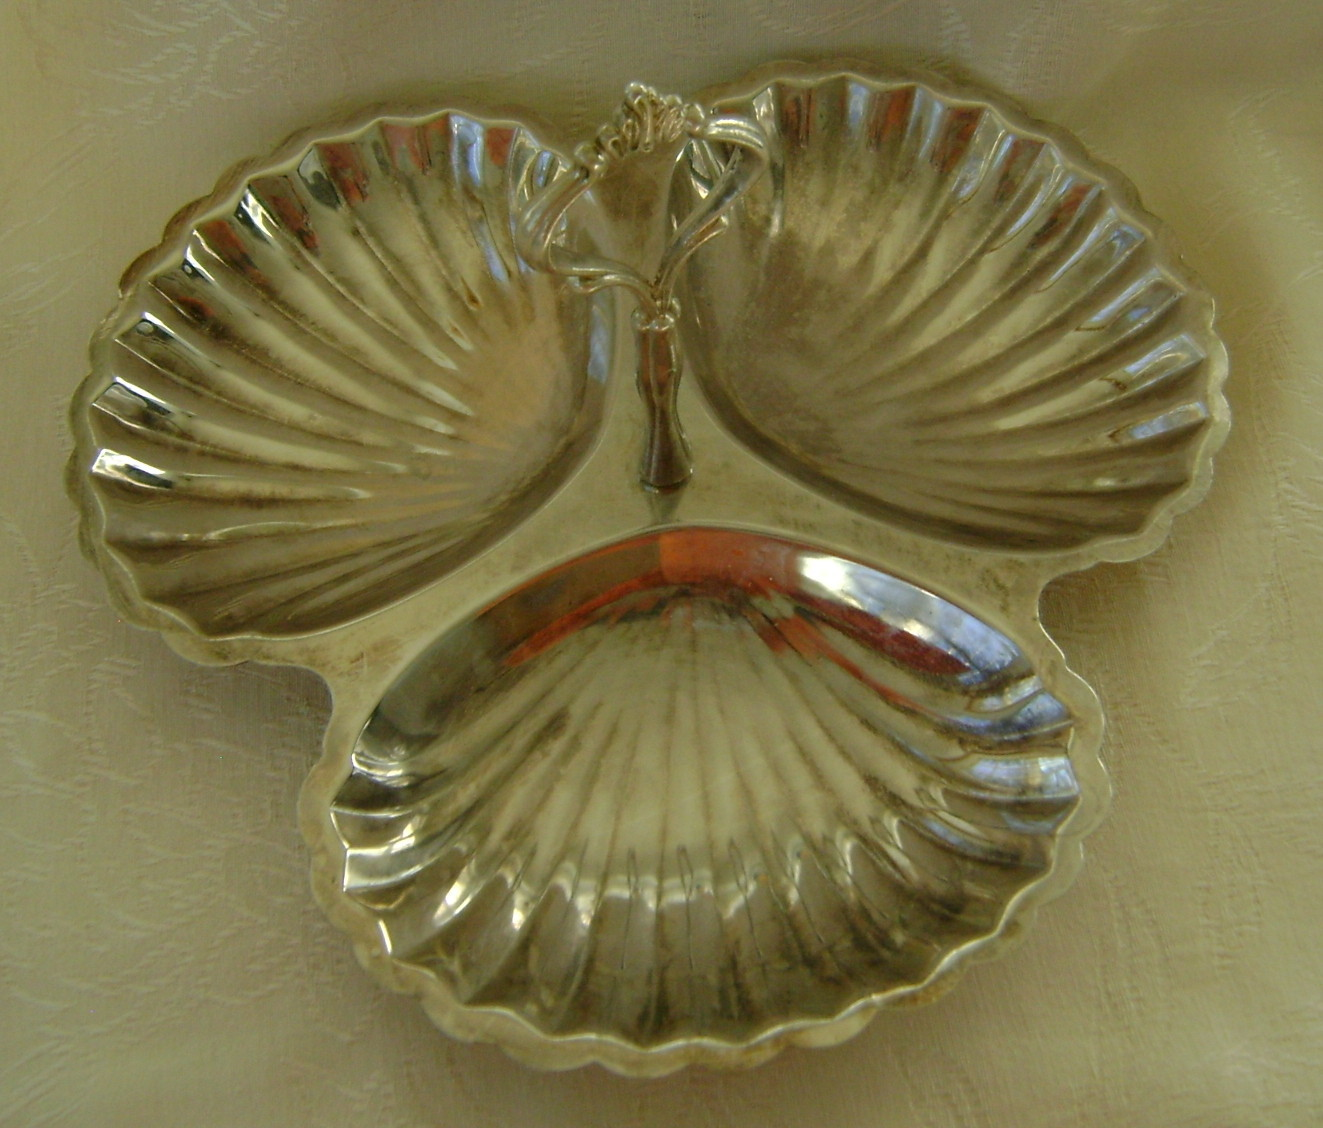 Serving Dish, Silverplate, 3 Seashell Sections, Elegant